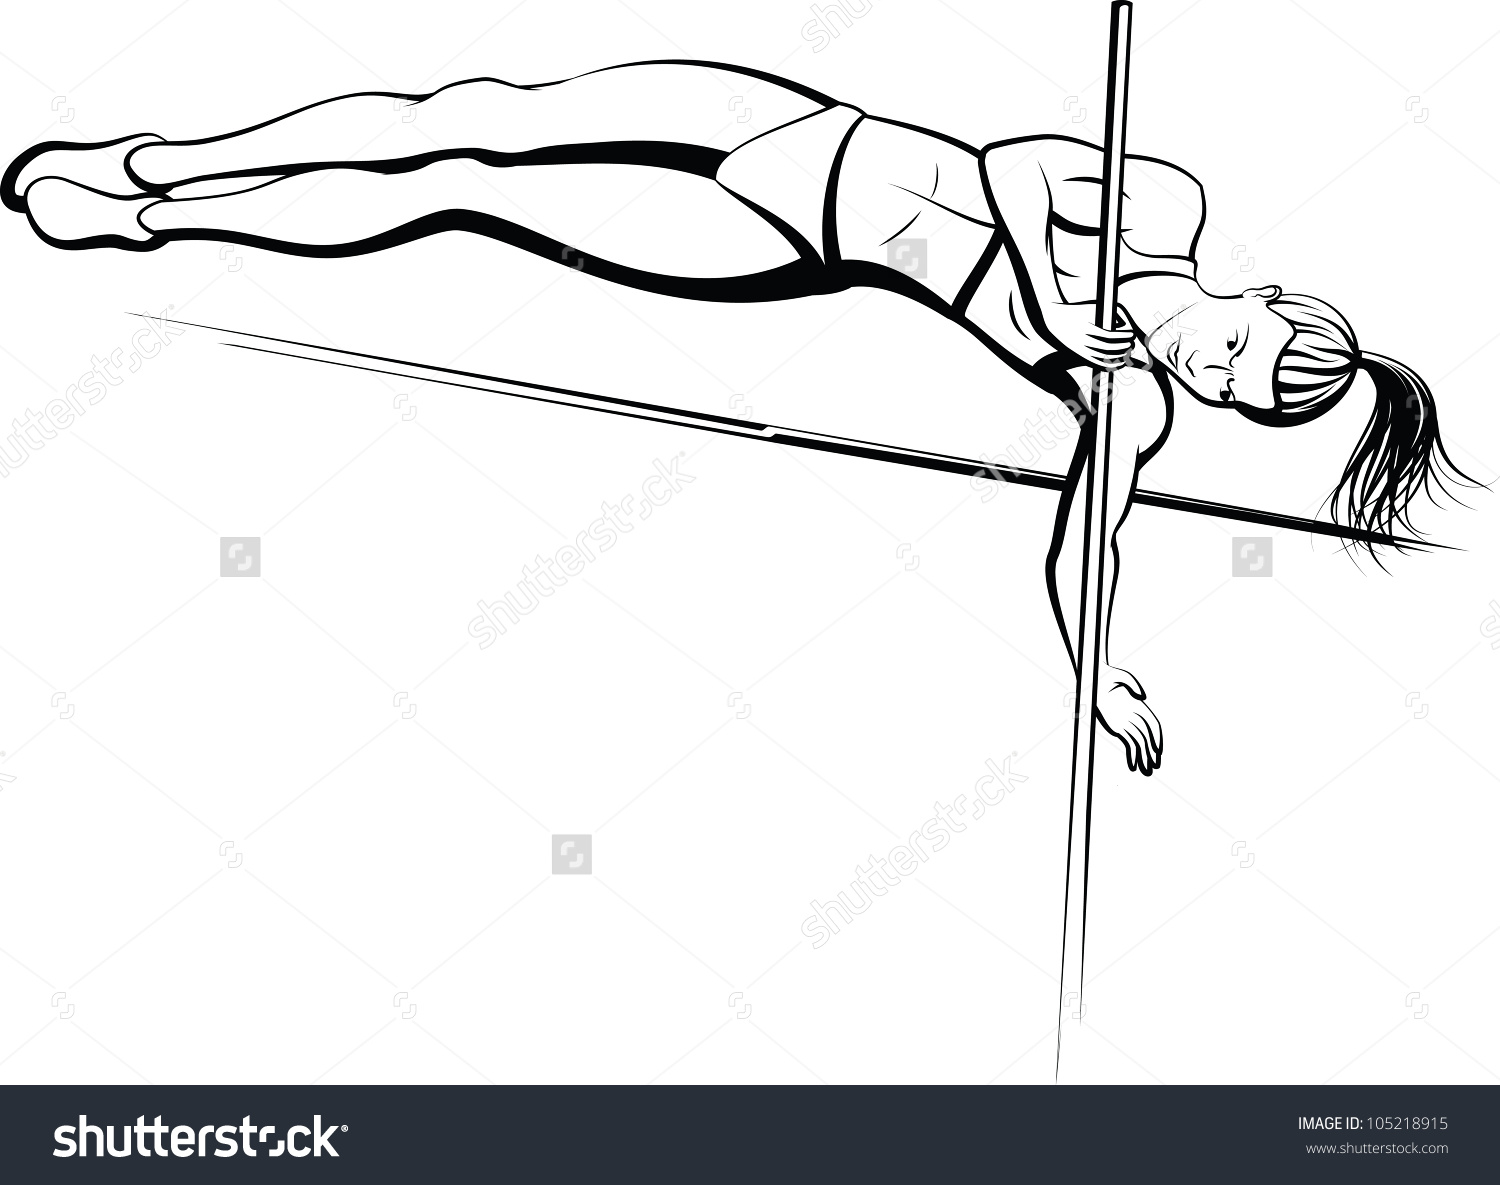 Pole vault clipart free svg freeuse stock Pole vault girl clipart - ClipartFest svg freeuse stock